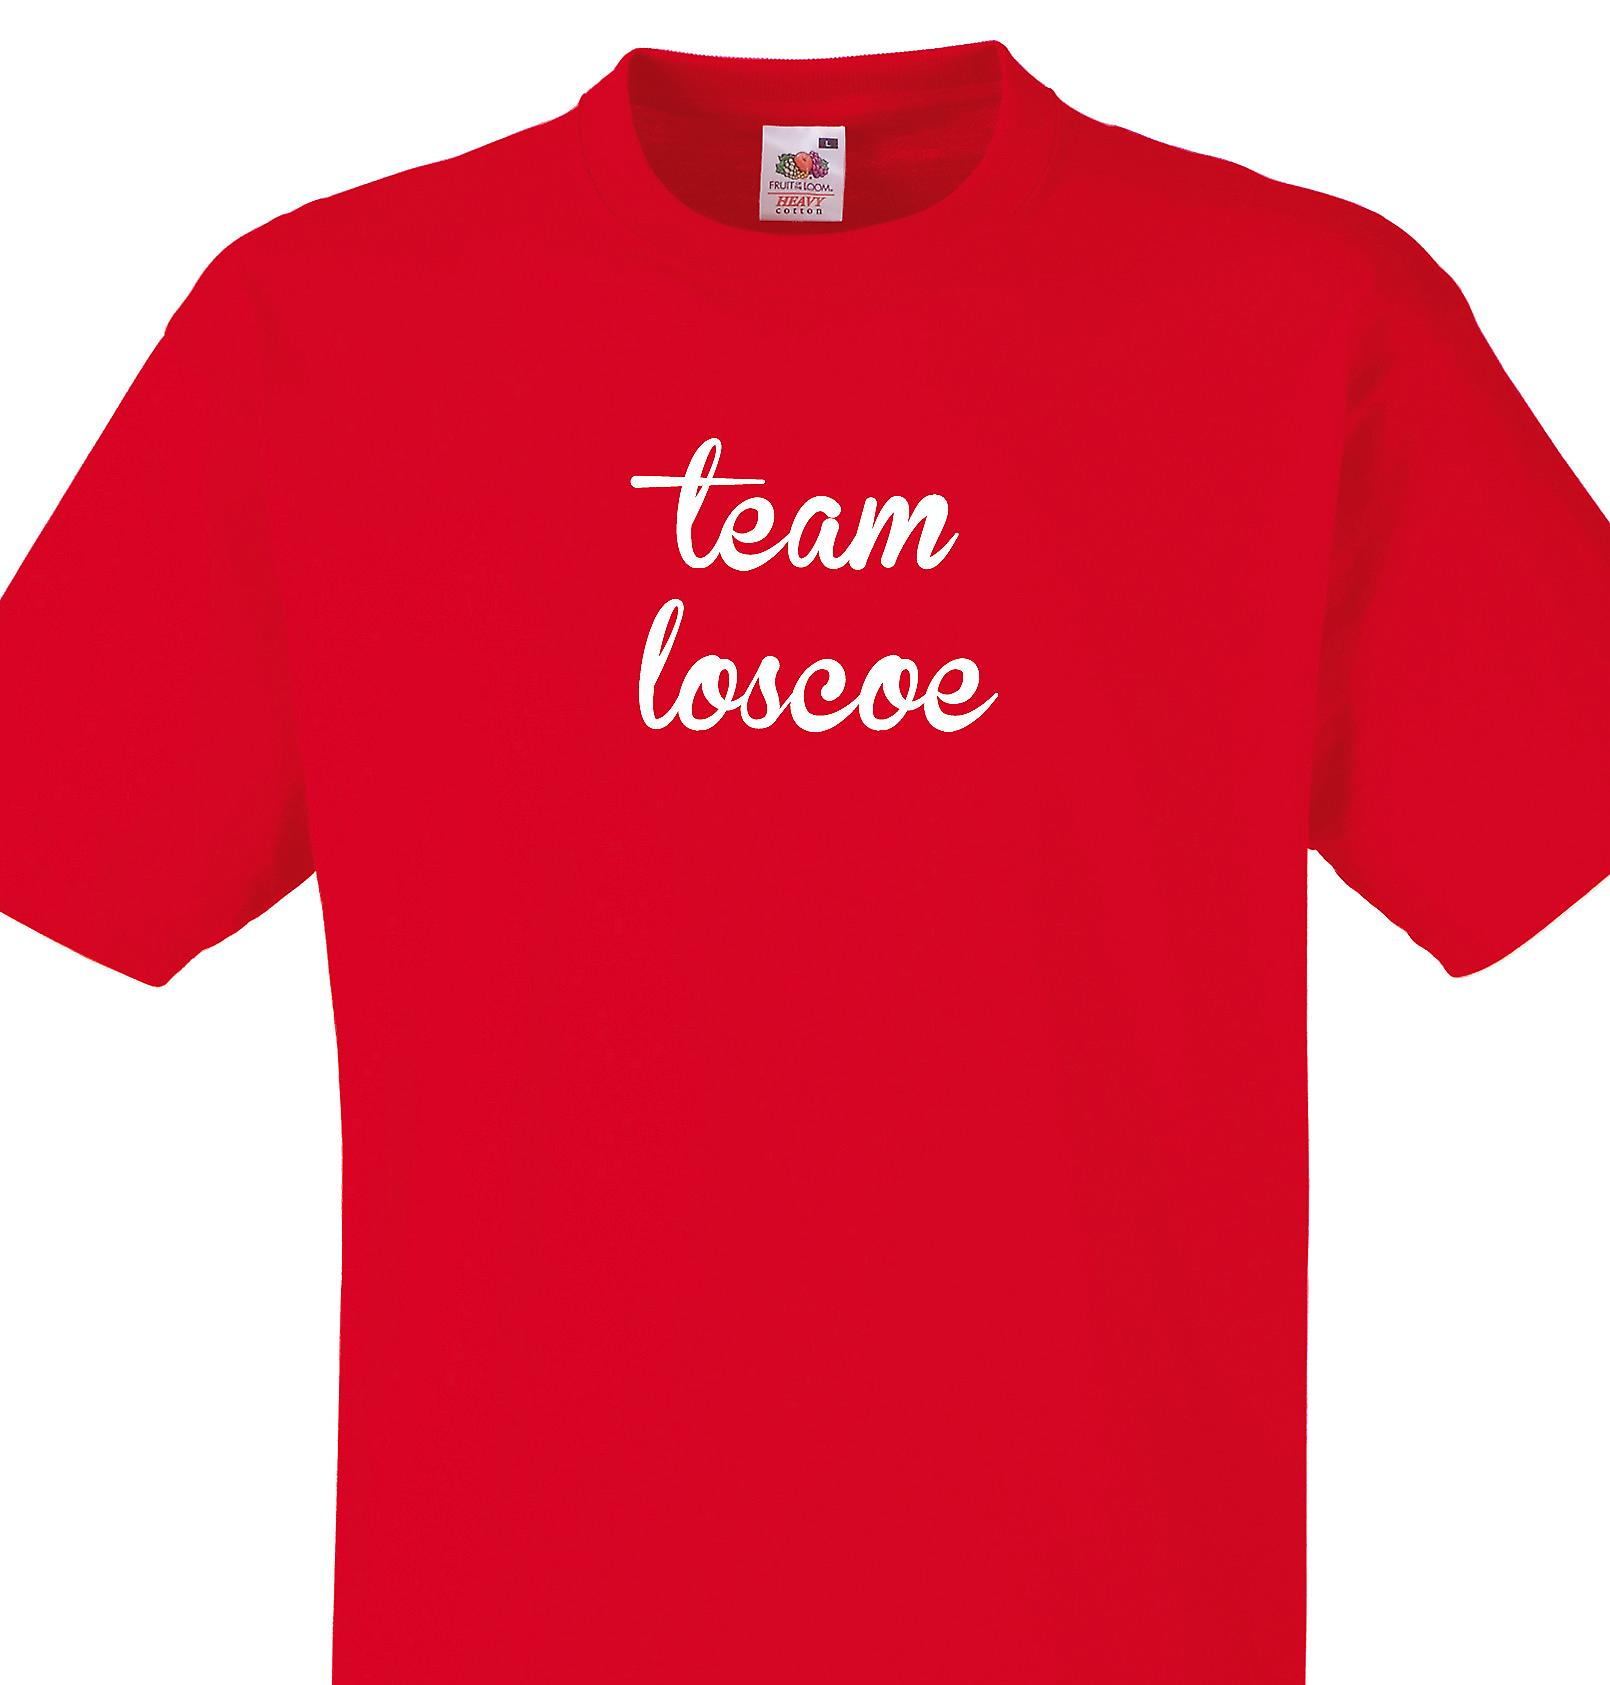 Team Loscoe Red T shirt